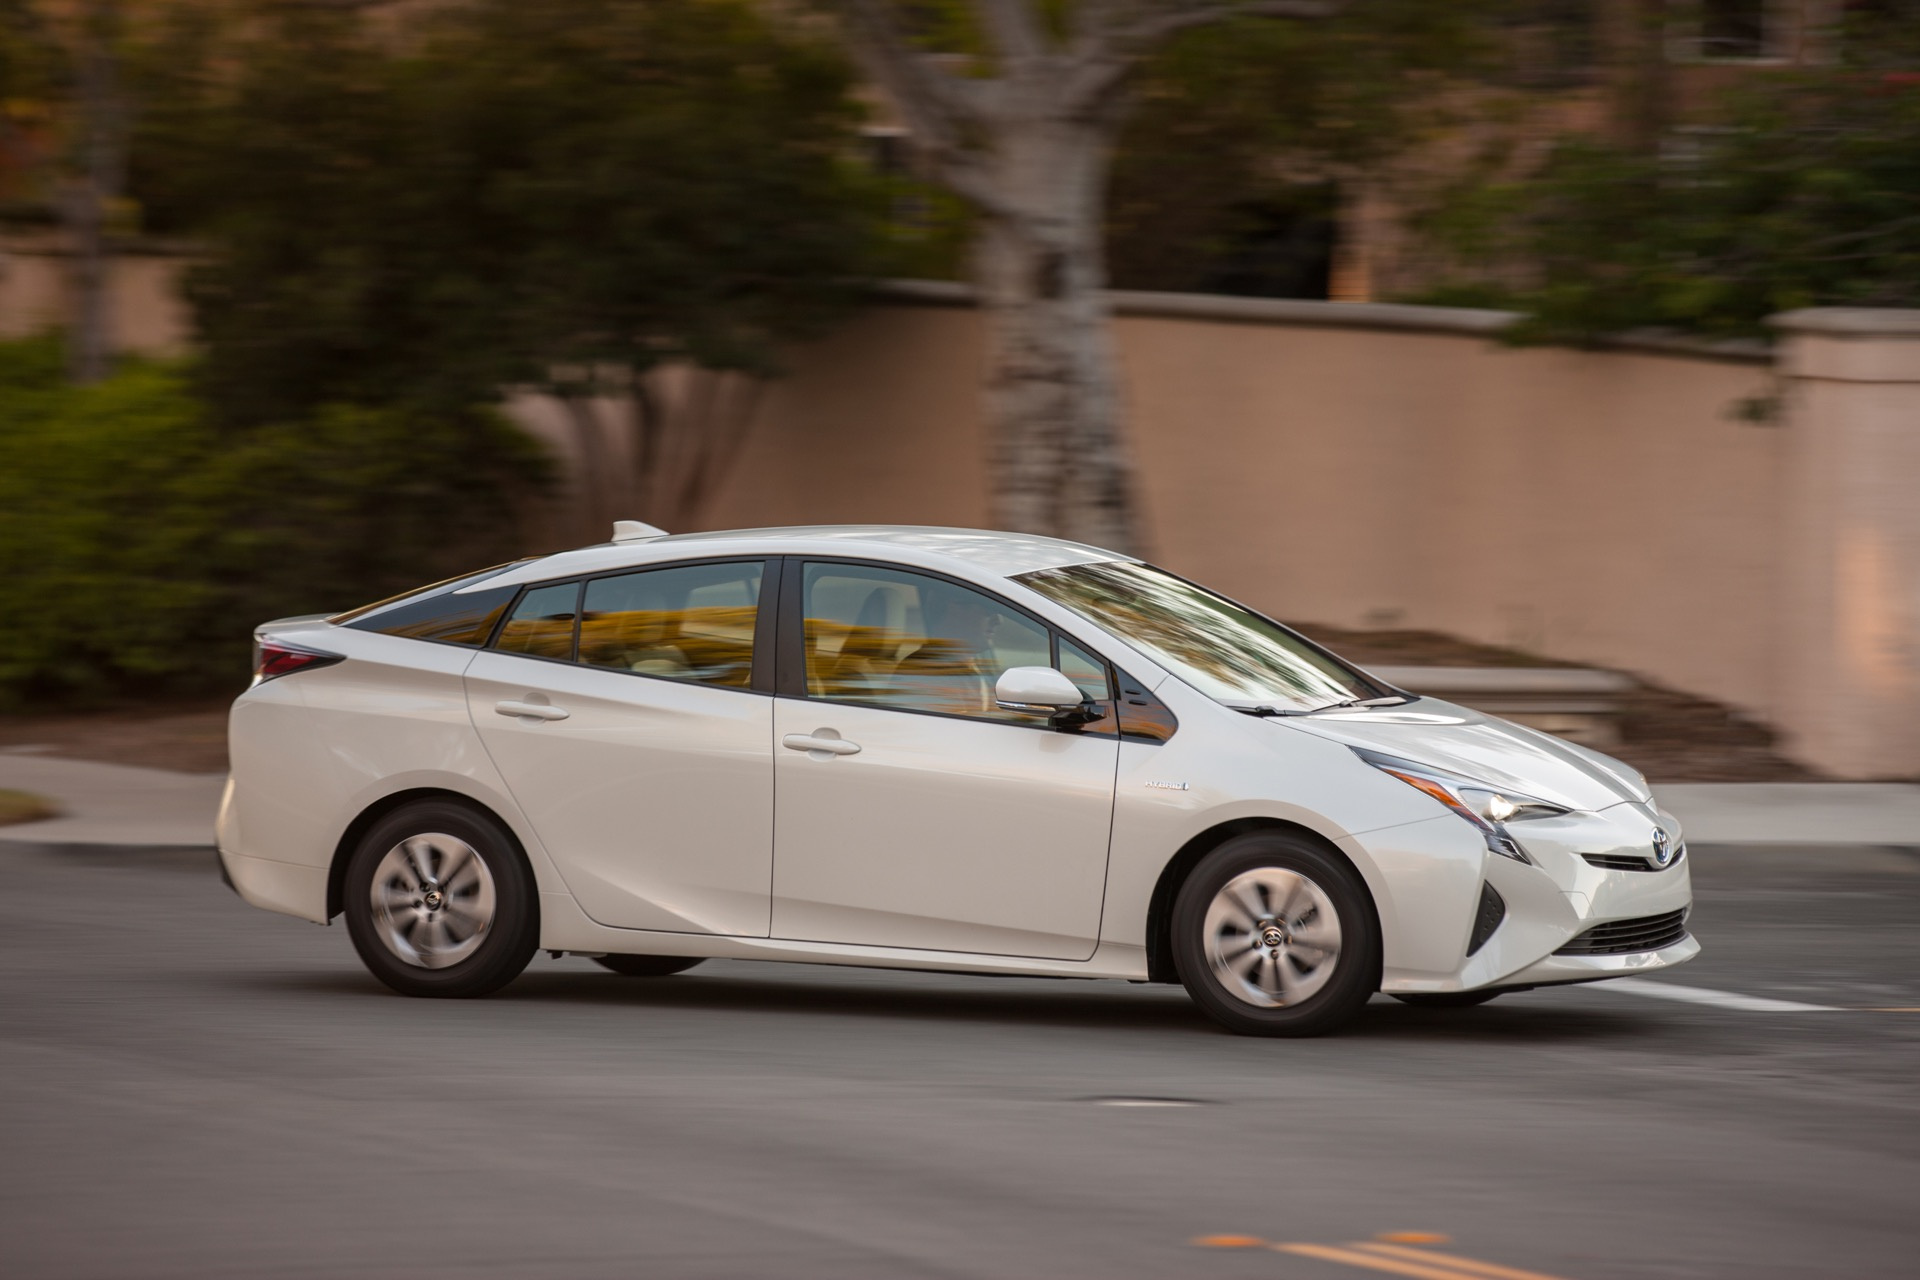 2016 Toyota Prius: Most Fuel-Efficient Car Without A Plug ...